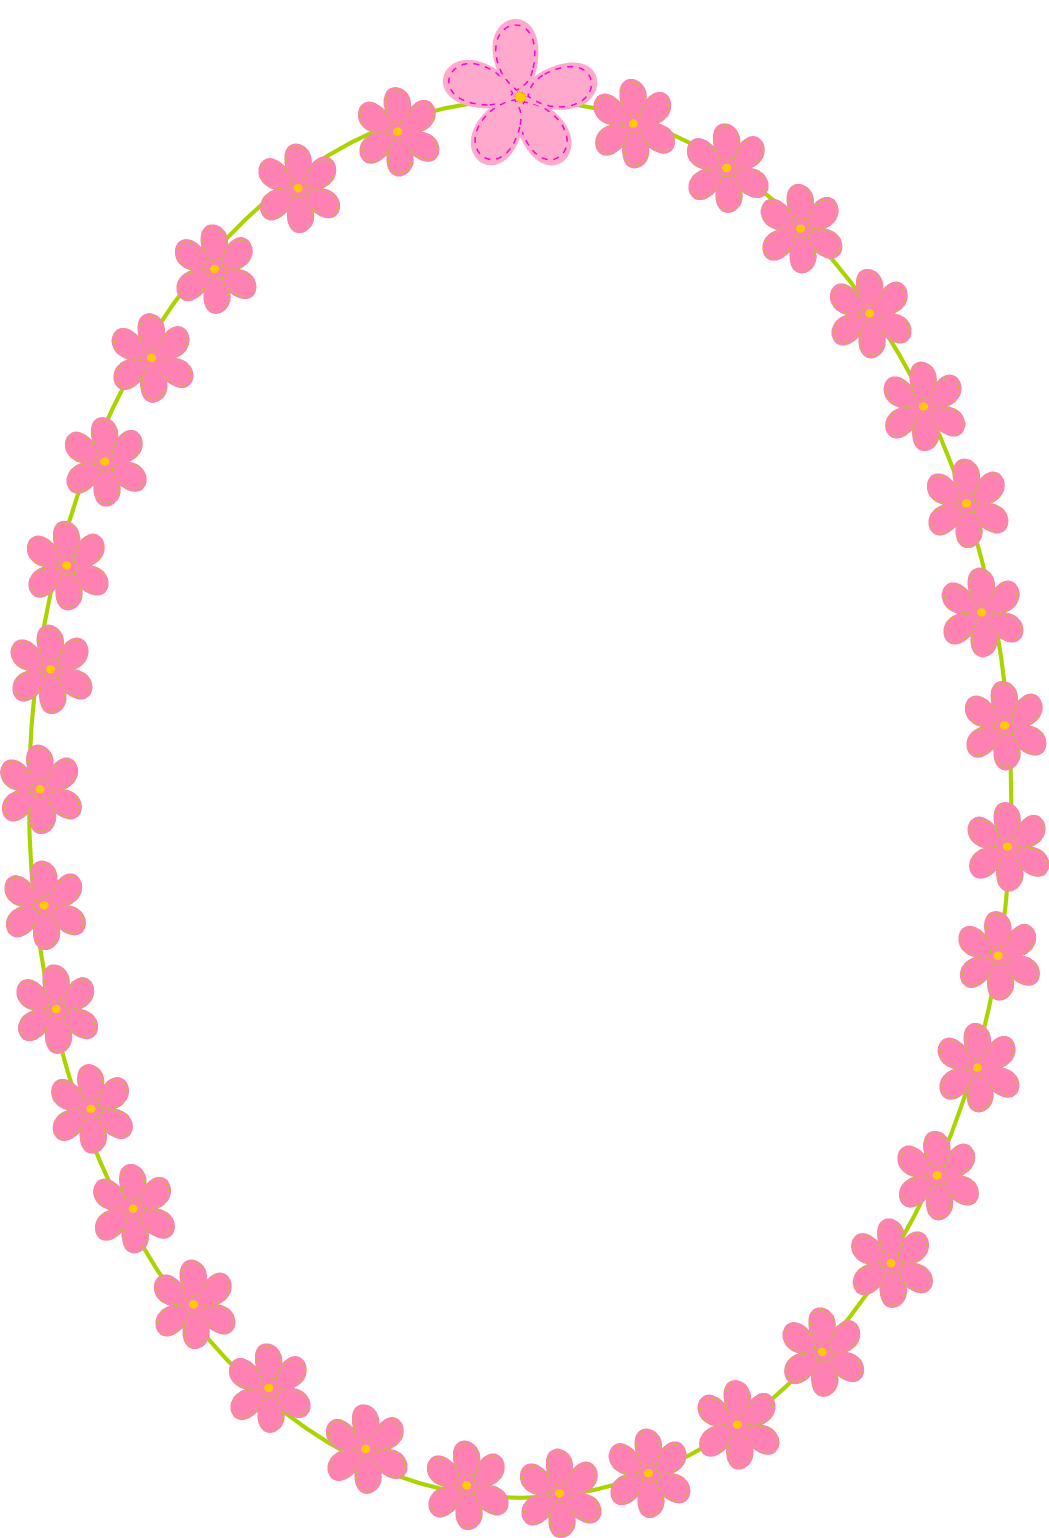 White and pink flowers border png 5641 transparentpng white and pink flowers border png 5641 mightylinksfo Images